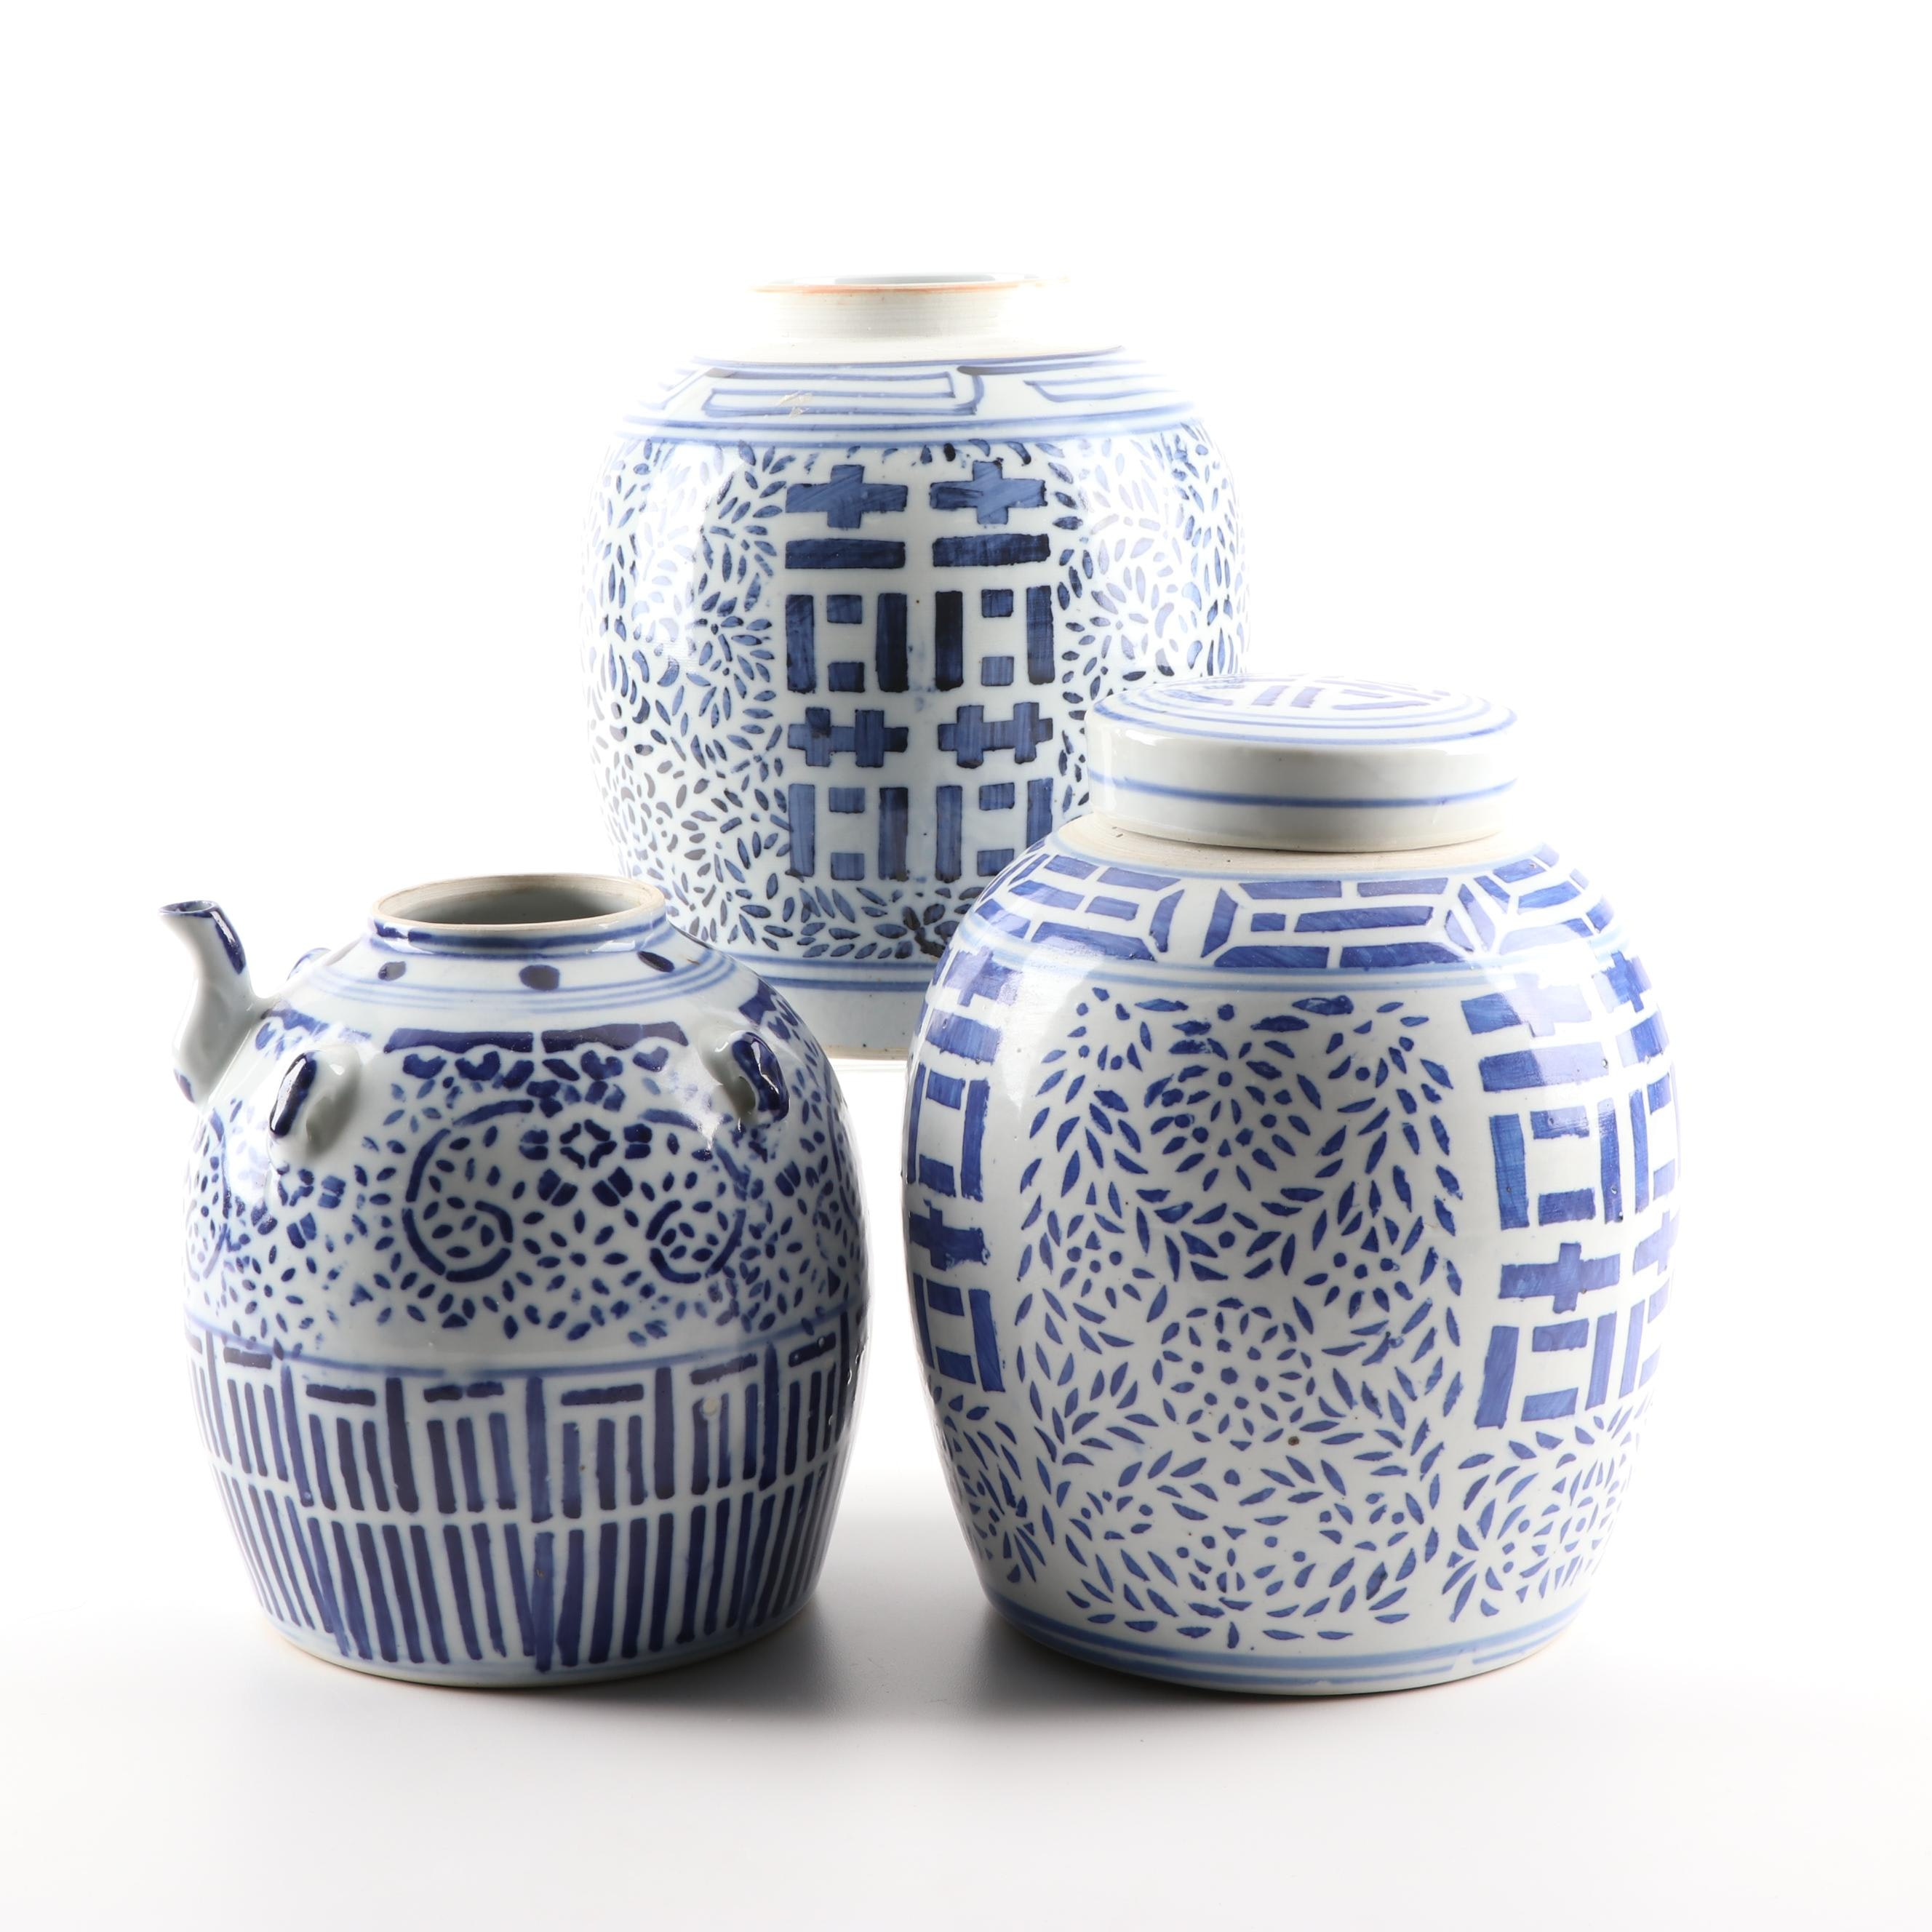 Chinese Ceramic Jars and a Jug